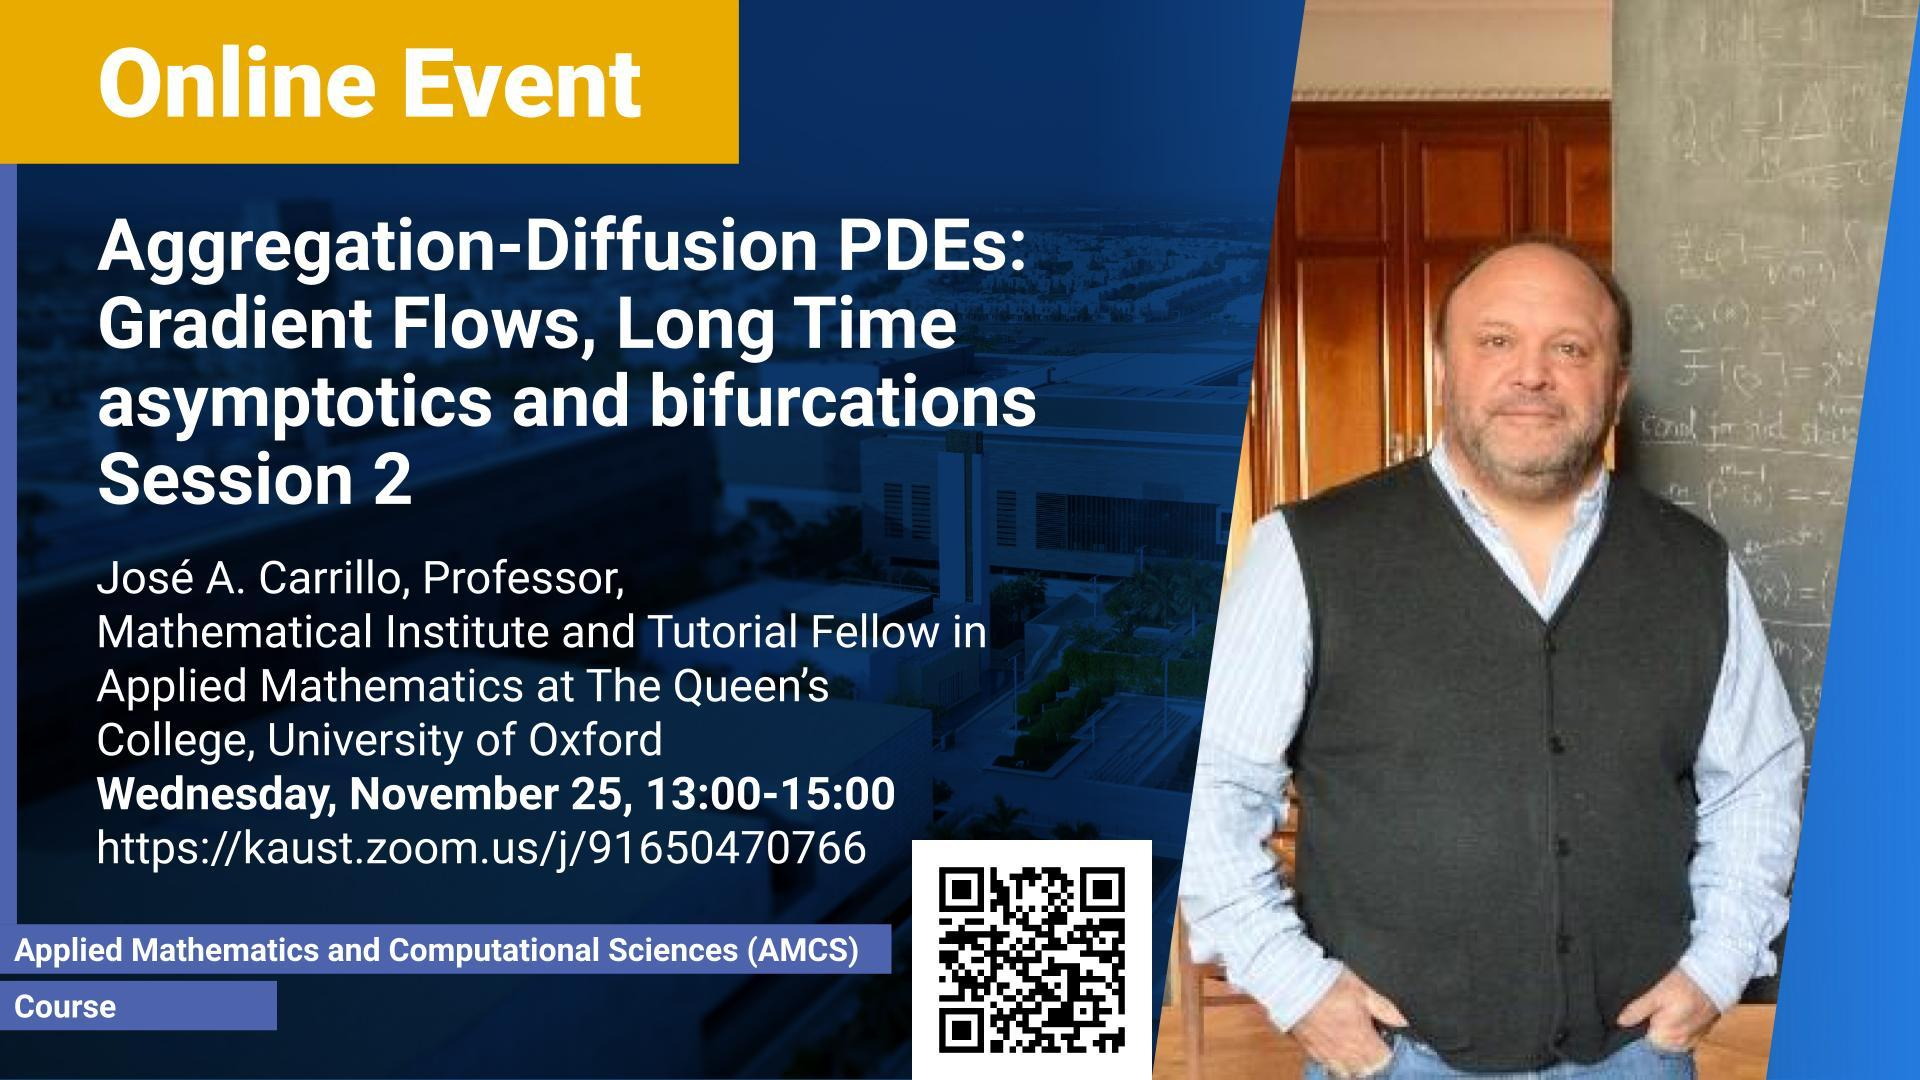 KAUST CEMSE AMCS Jose Carrillo Aggregation Diffusion PDEs Gradient Flows Long Time asymptotics and bifurcations Session 2